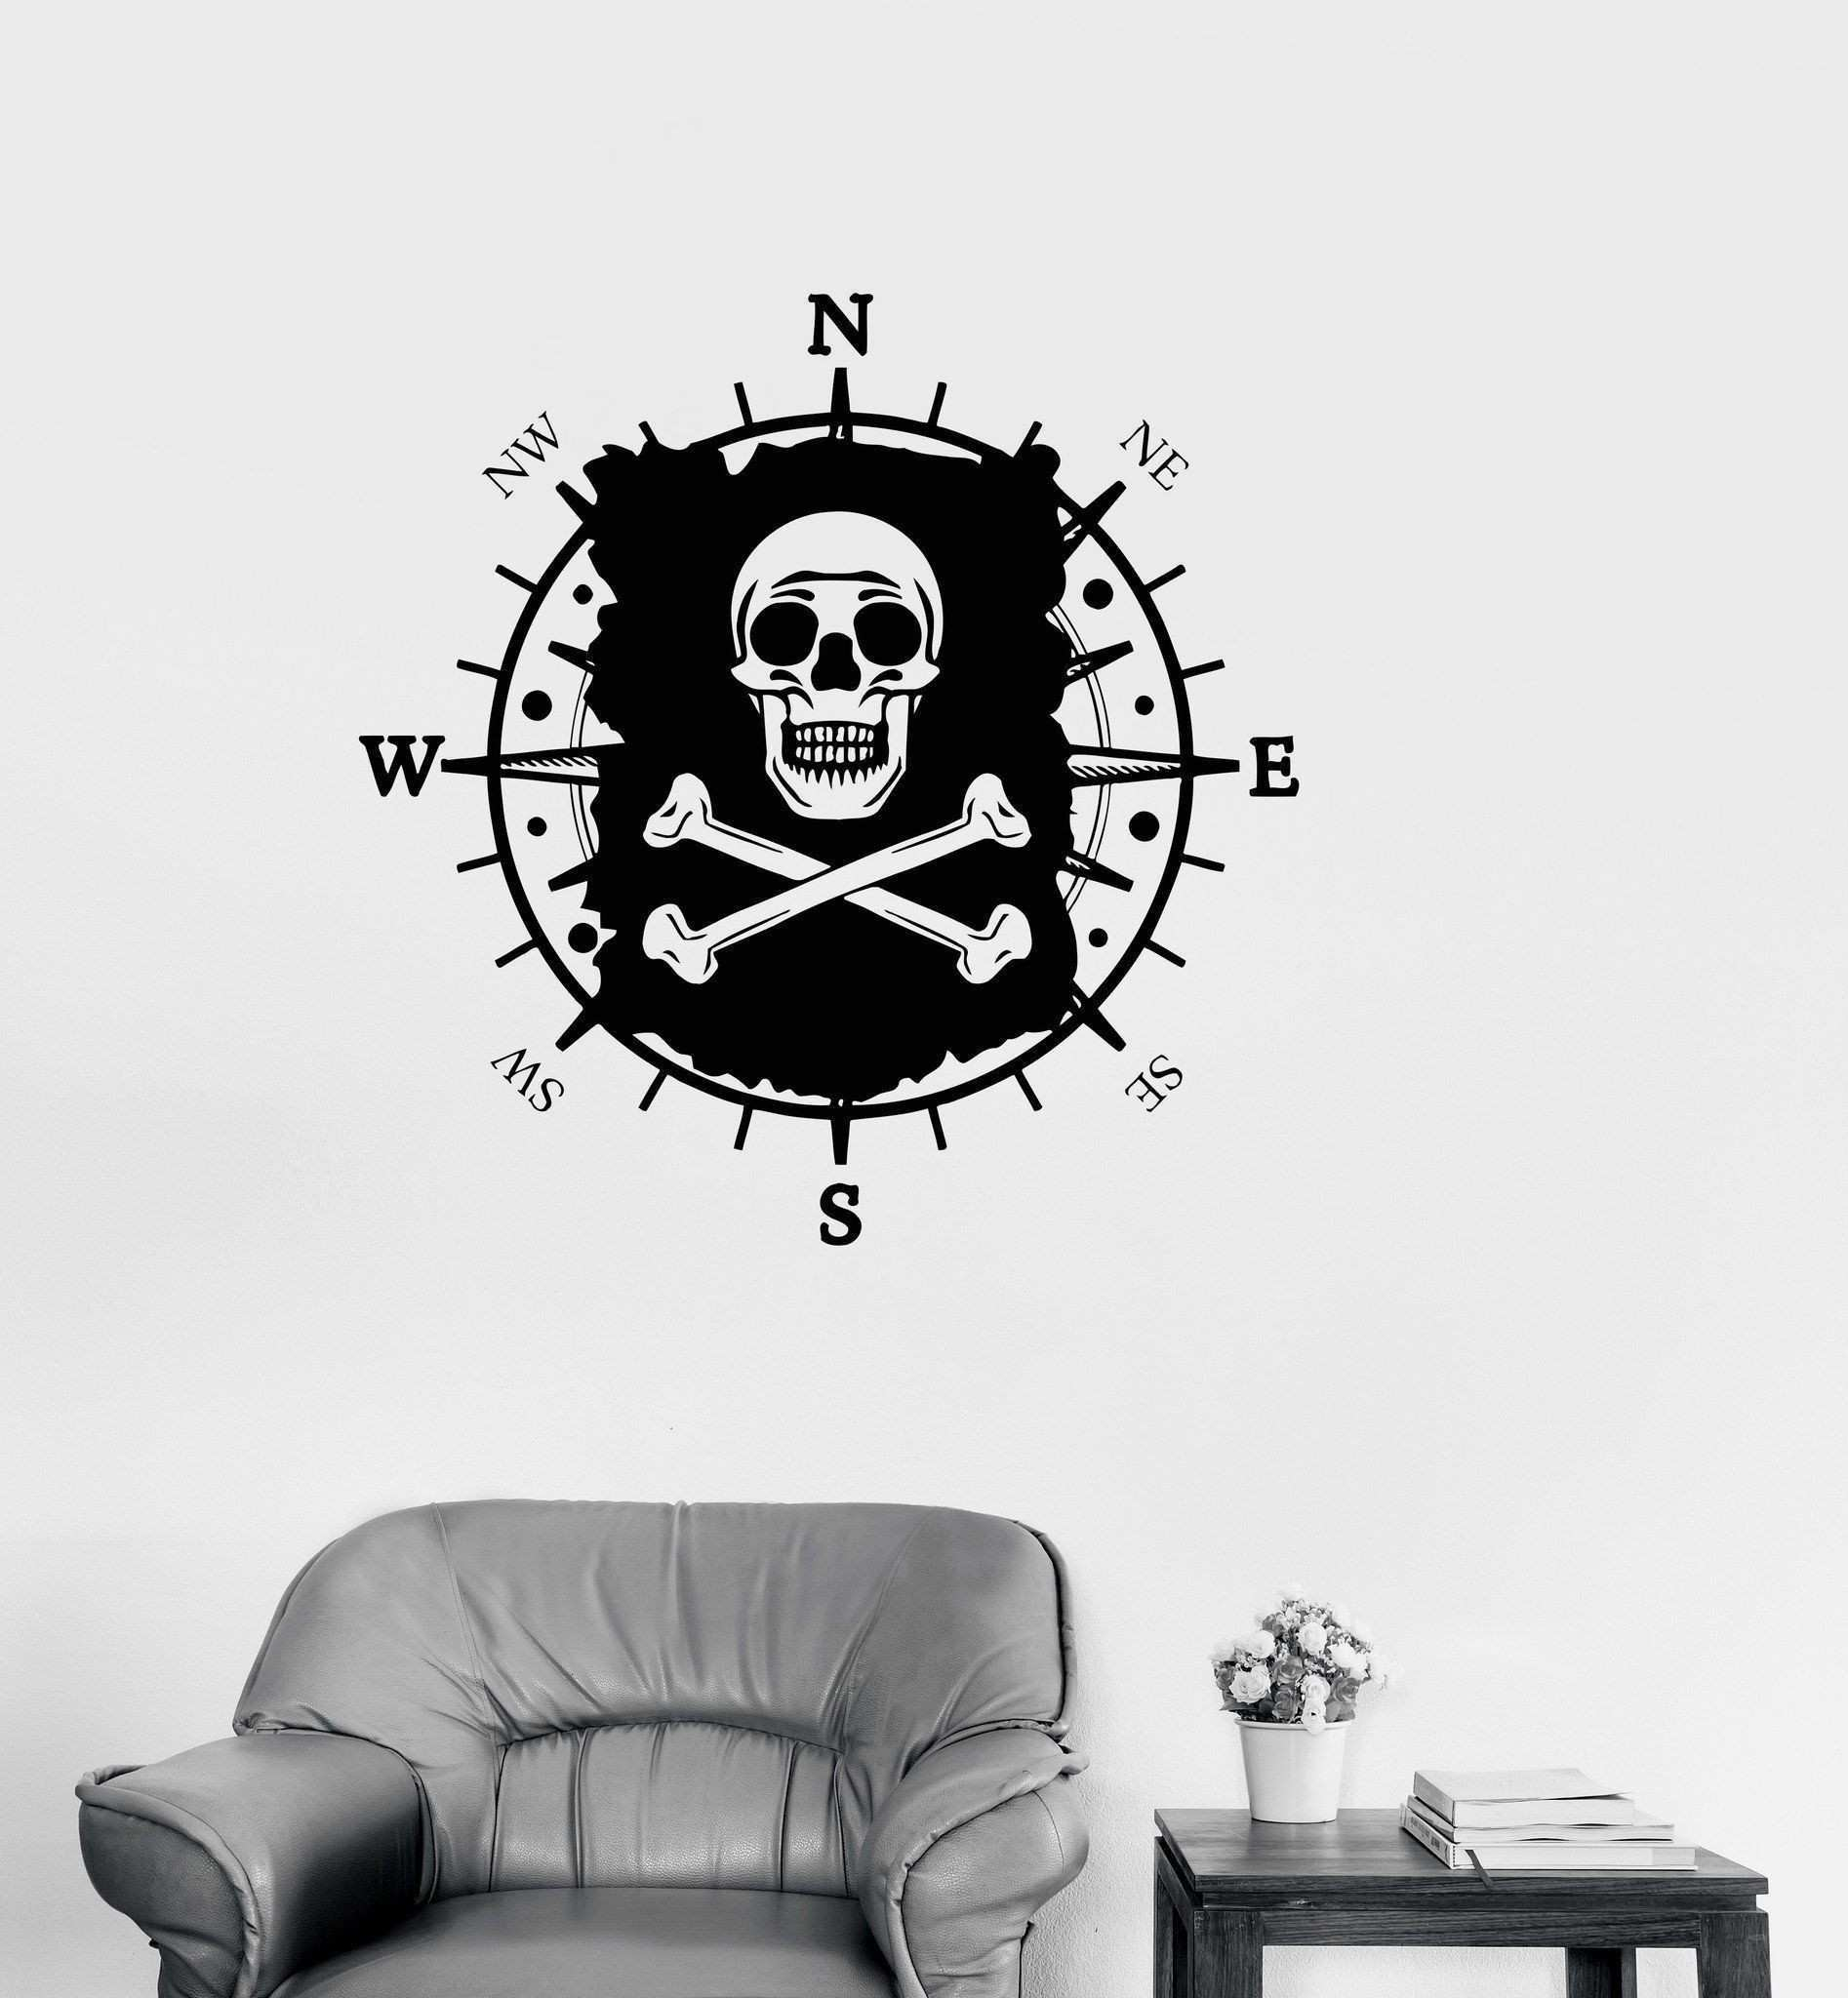 Awesome Nautical Map Wall Decal